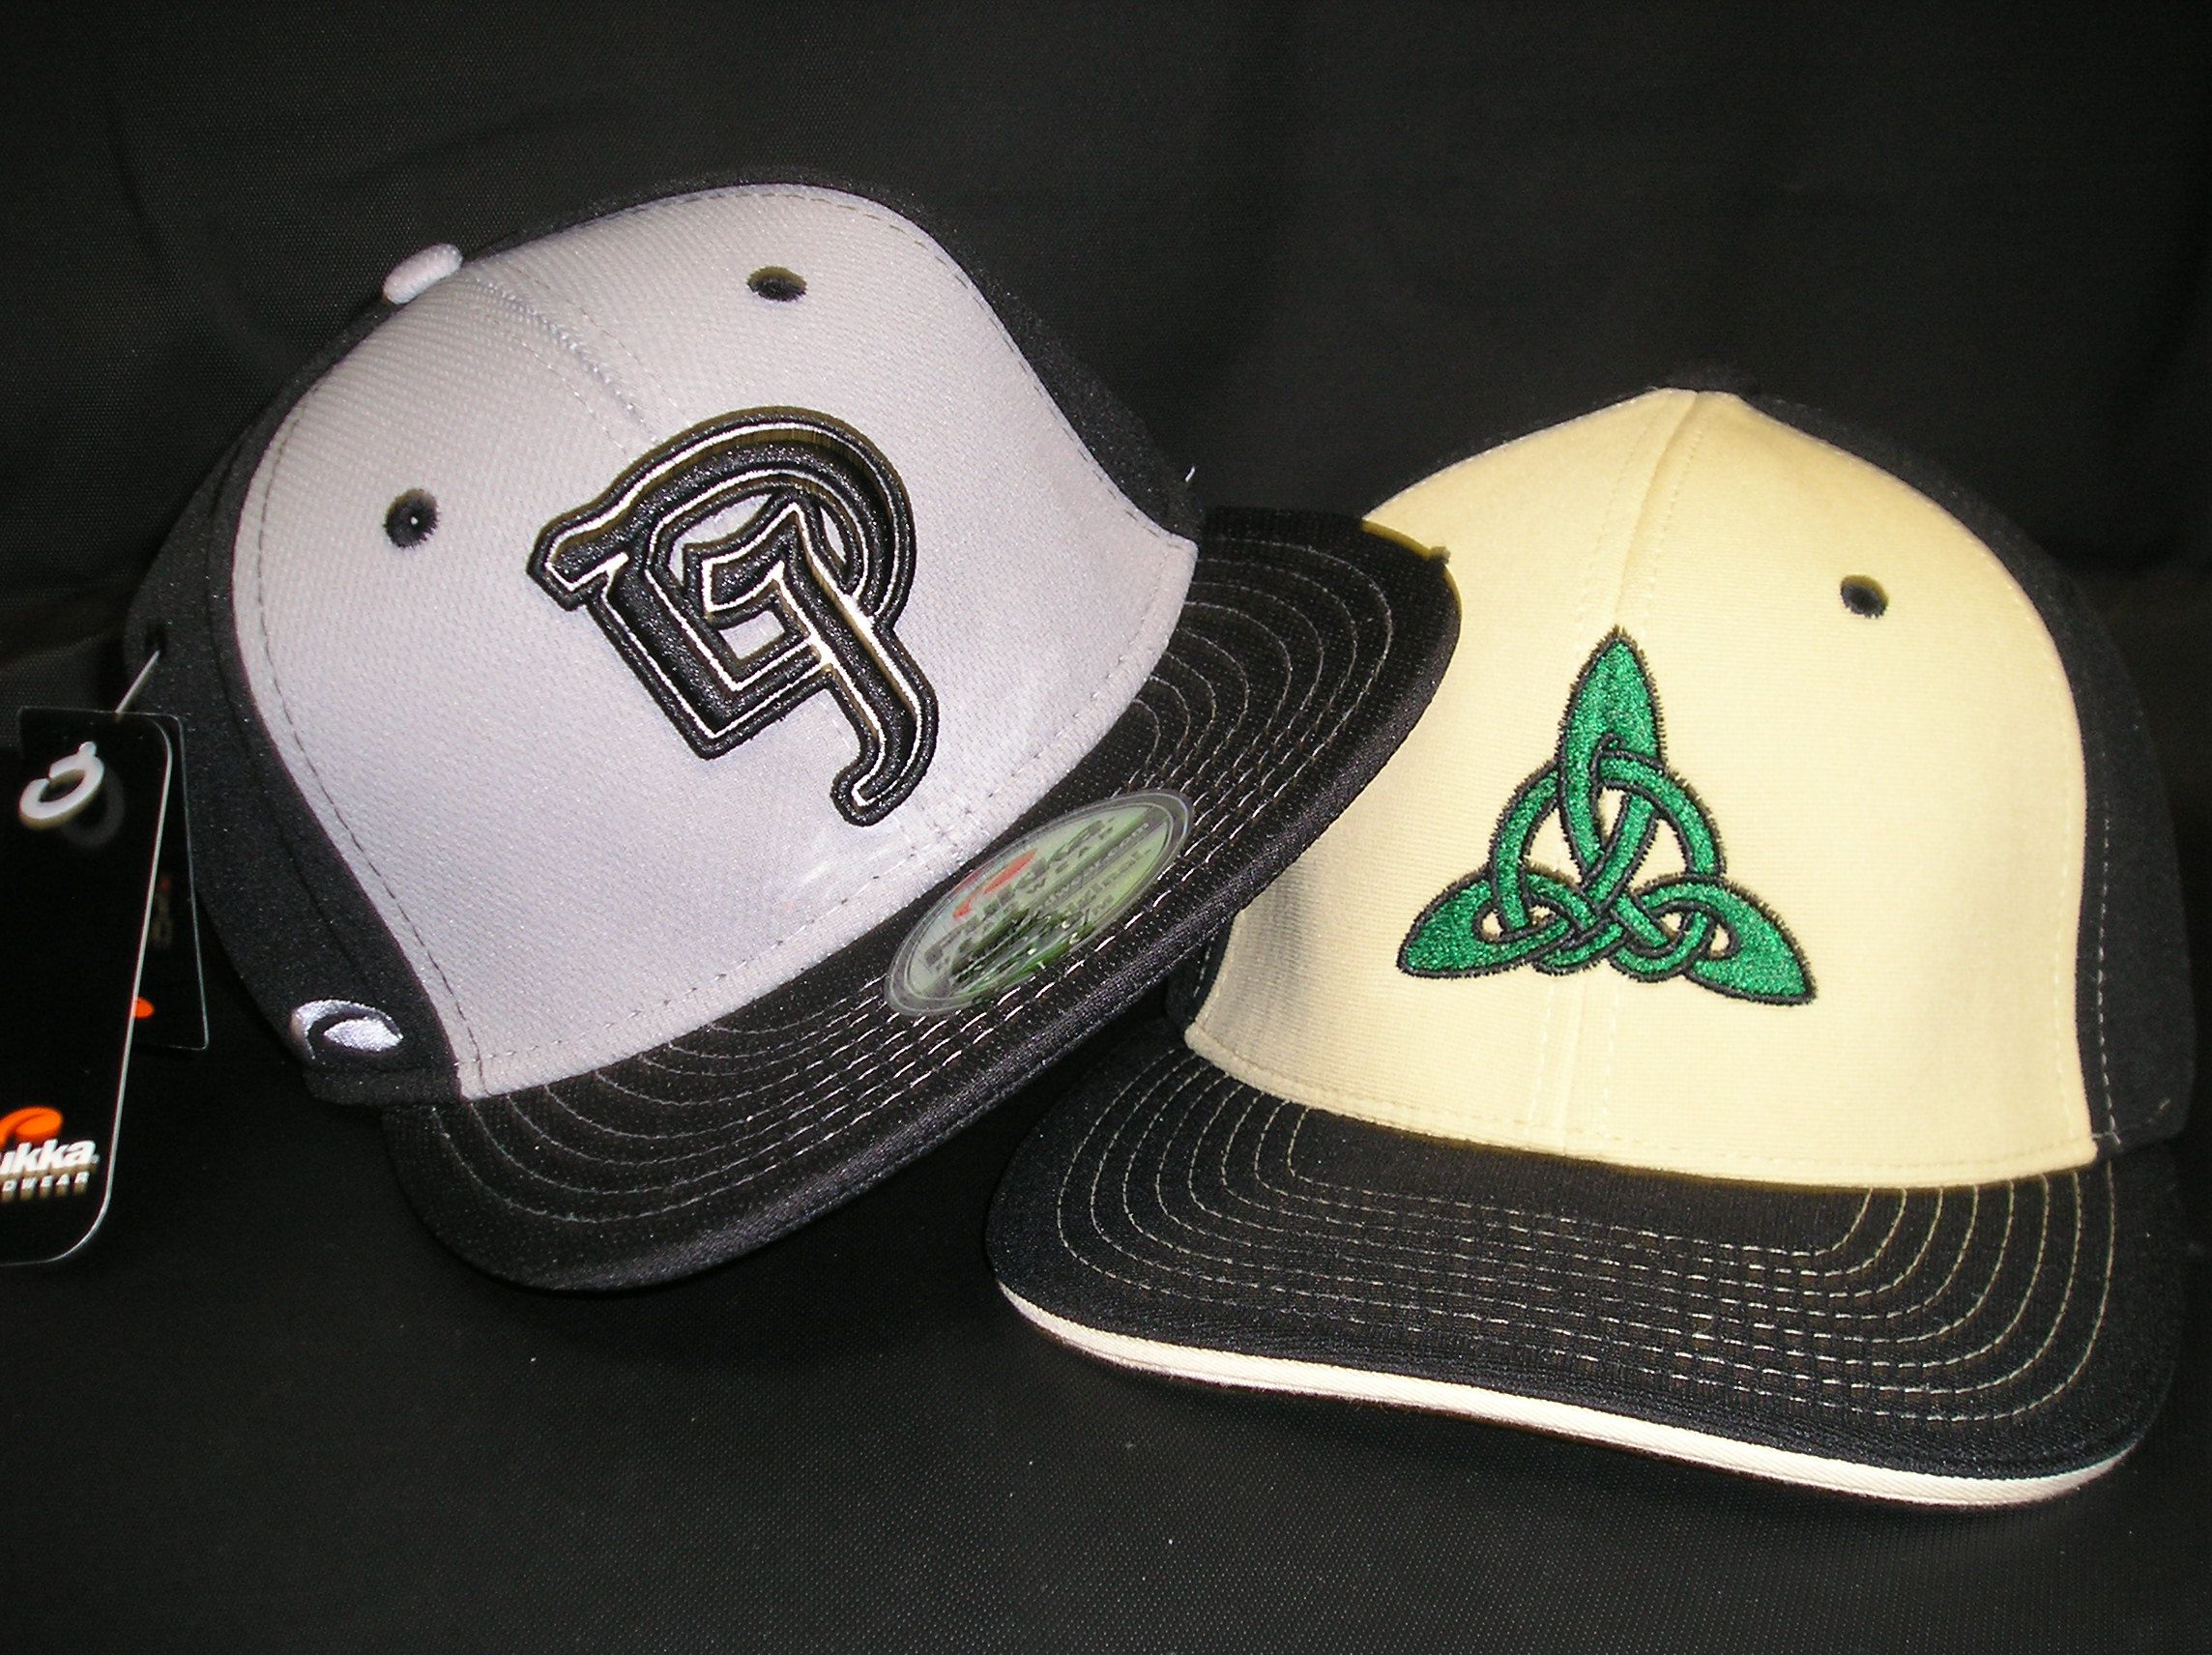 313c6fdbe16 Support your local sports teams with custom headwear like these Pukka  (left) and Pacific Headwear (right) caps supporting our local Dublin Jerome  athletic ...